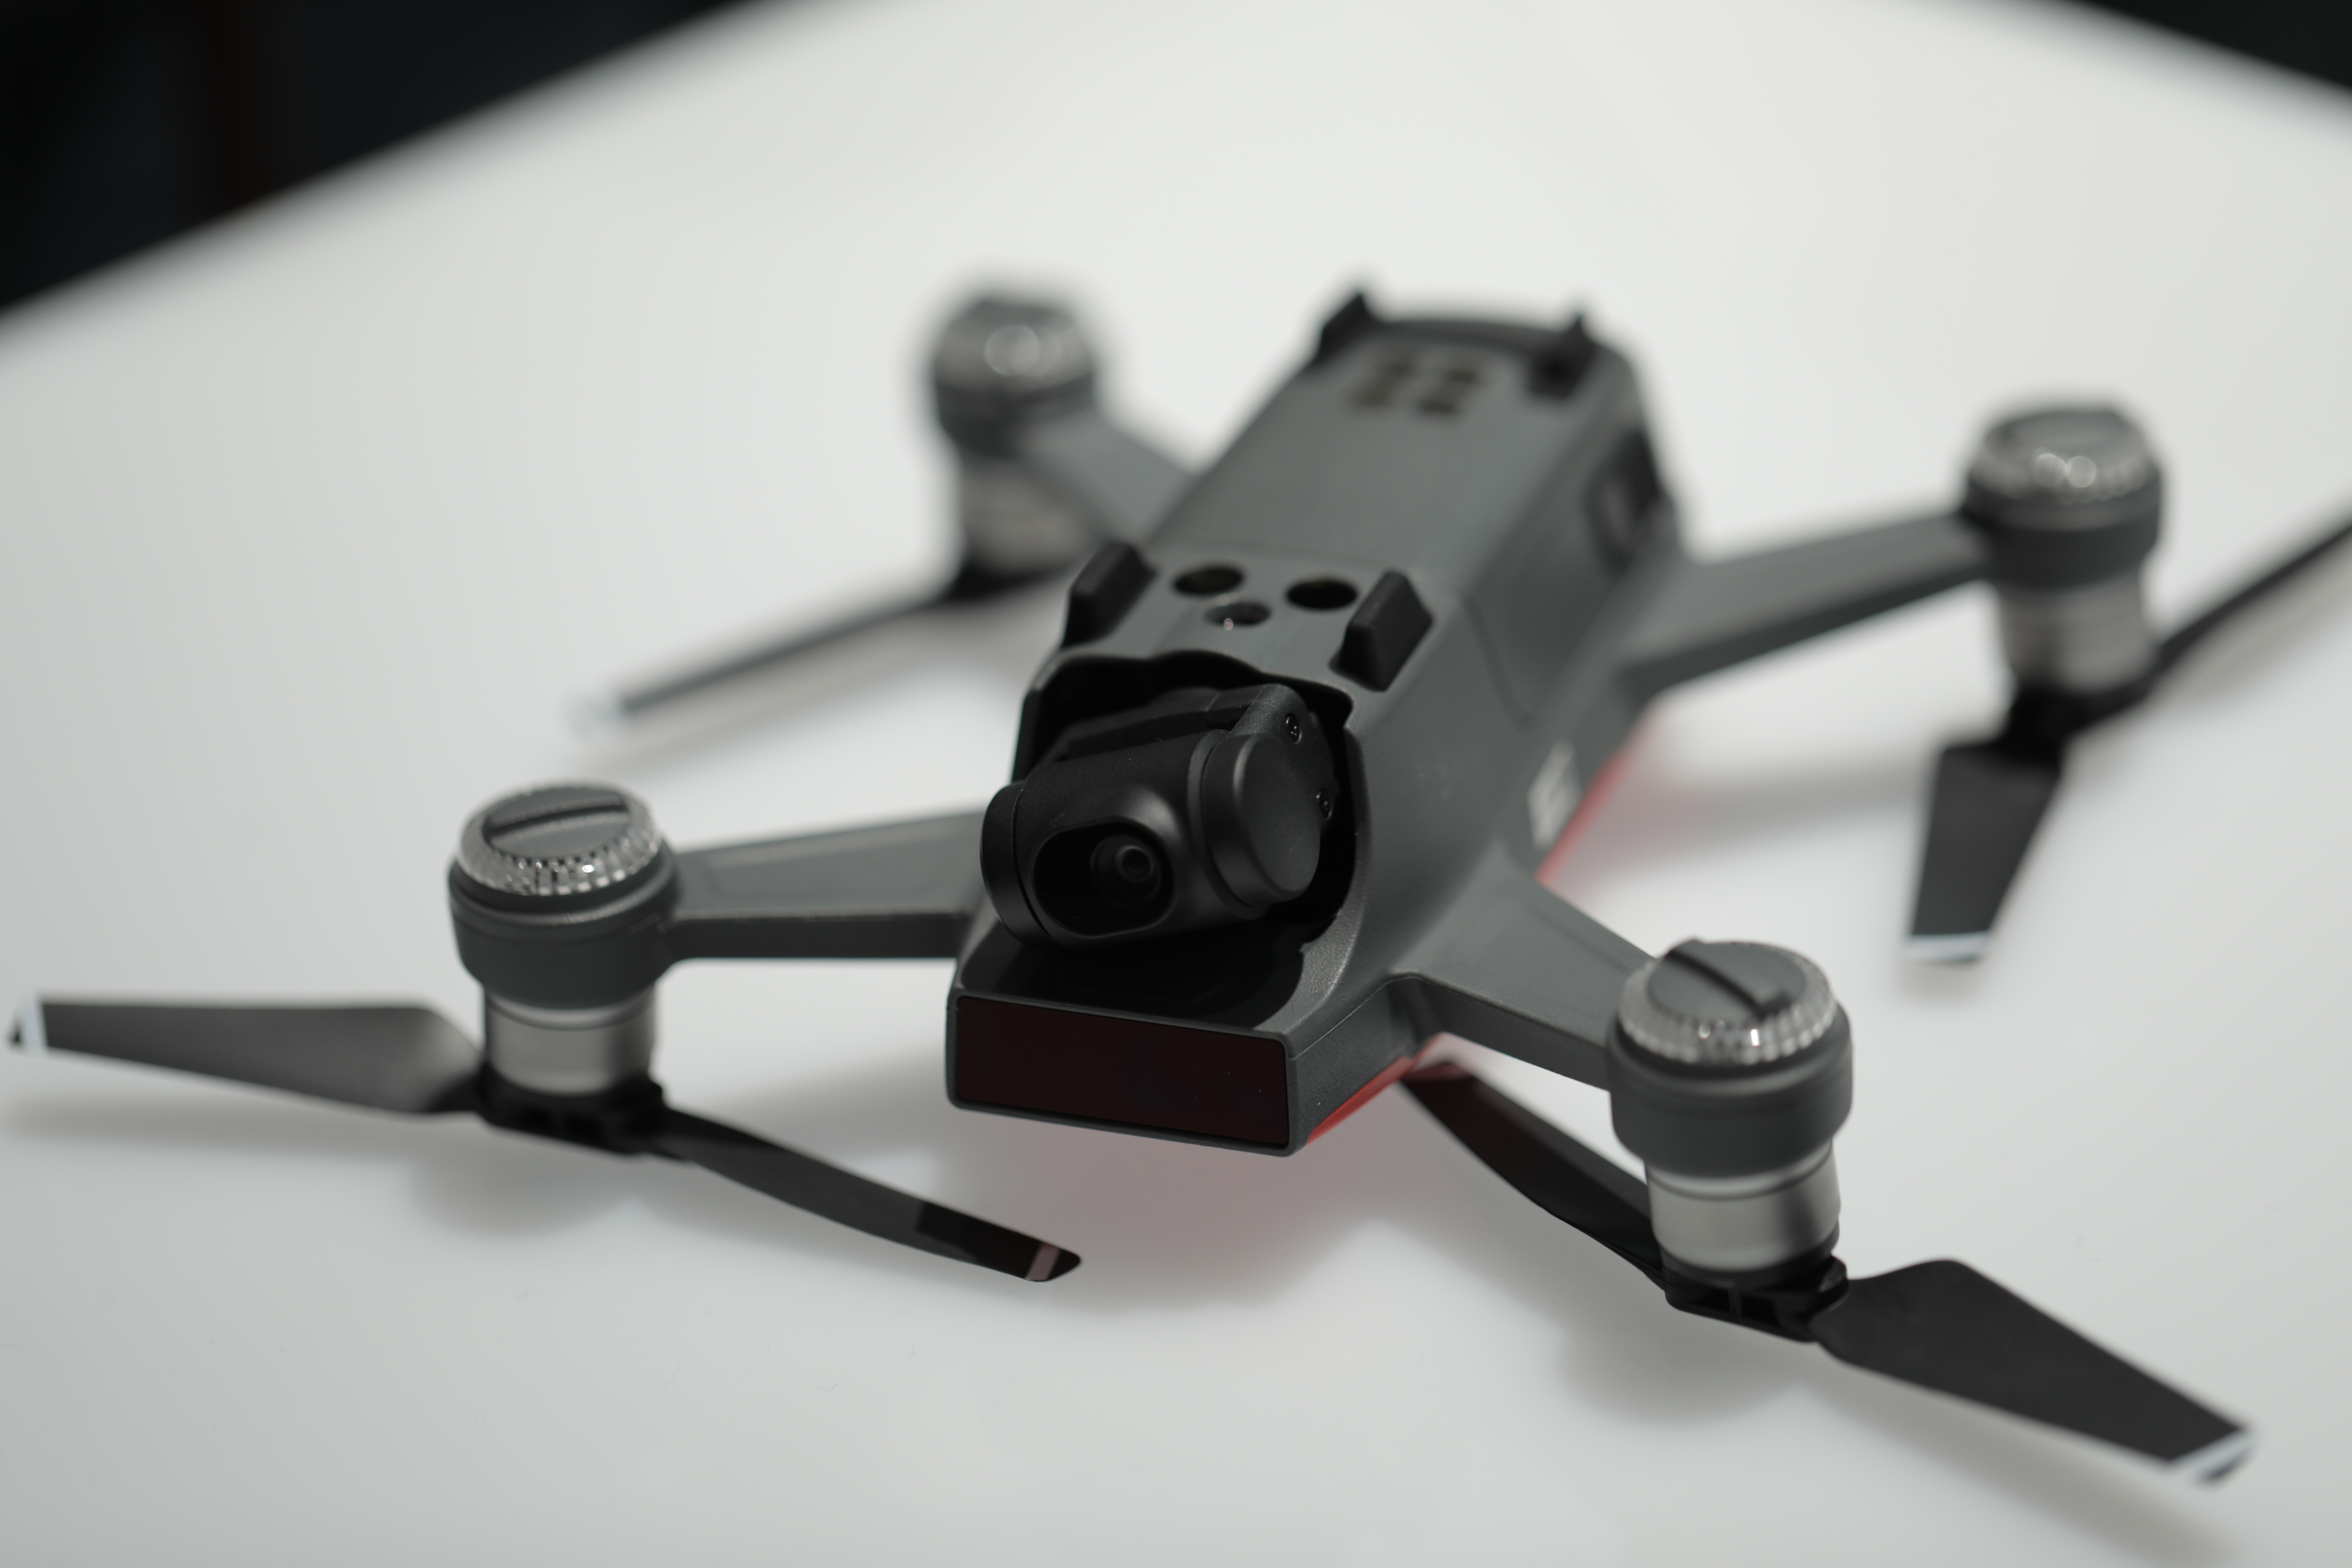 The DJI Spark is fun, but not the mainstream drone we were promised